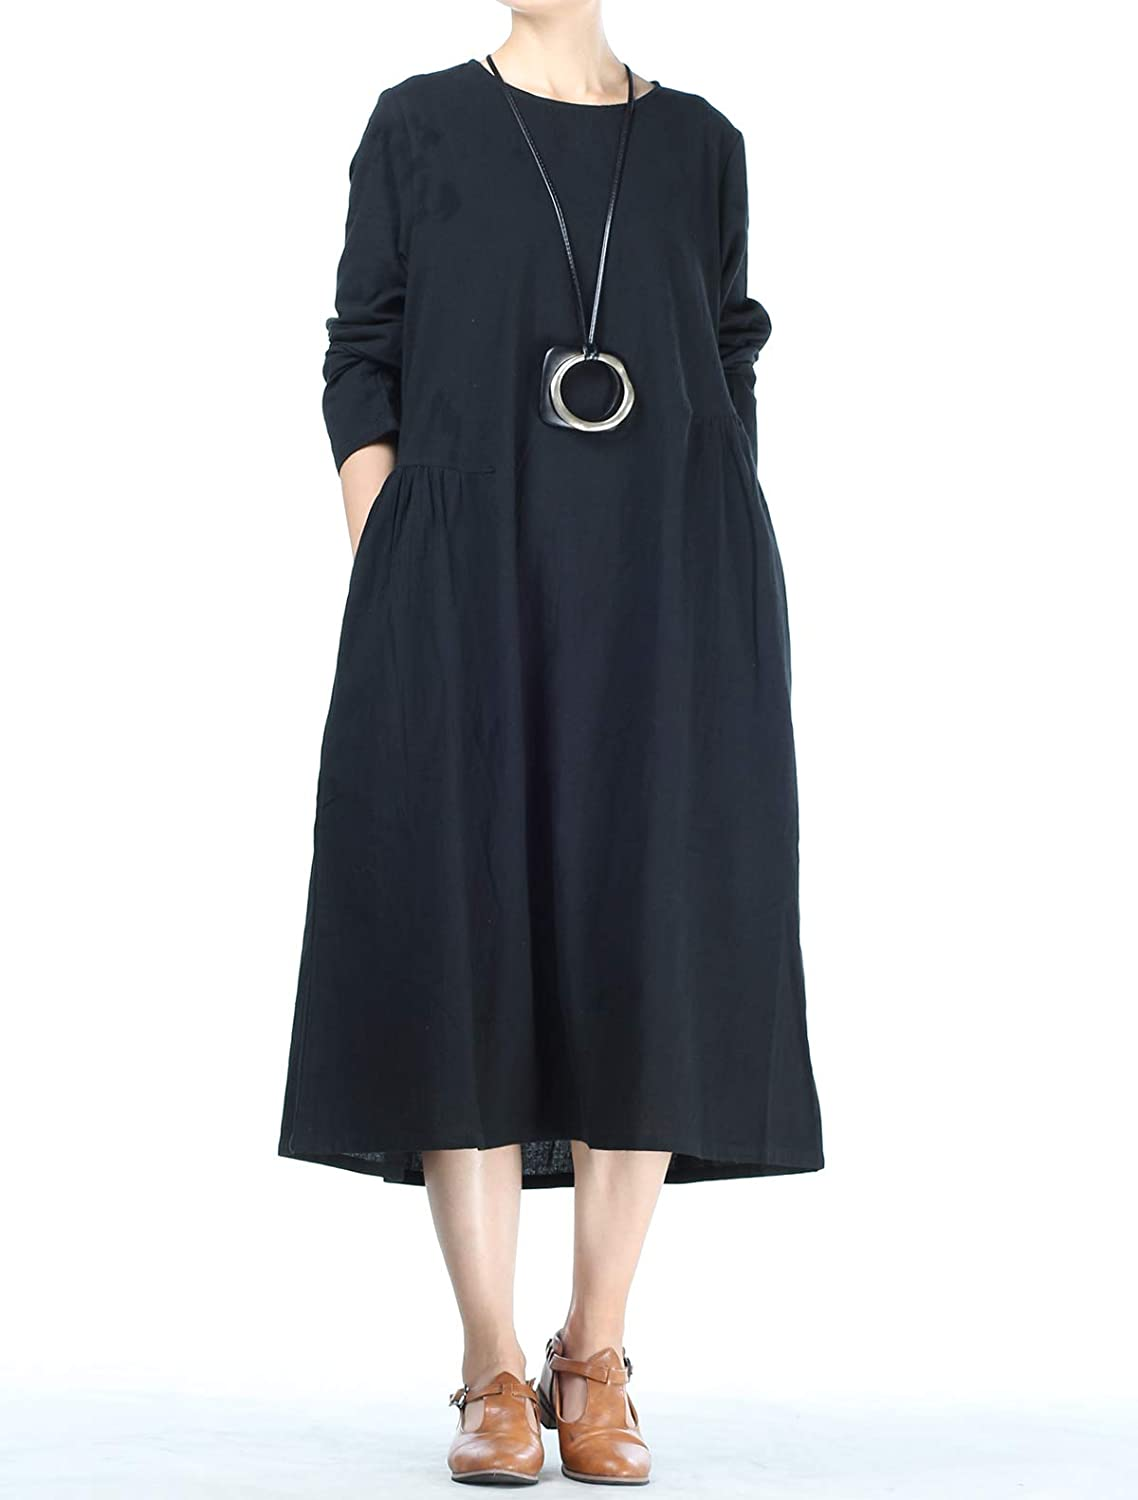 53b01db461e7 Mordenmiss Women's Cotton Linen Dresses Fall Loose Fit Basic Dress with  Pockets (XL Black) at Amazon Women's Clothing store: